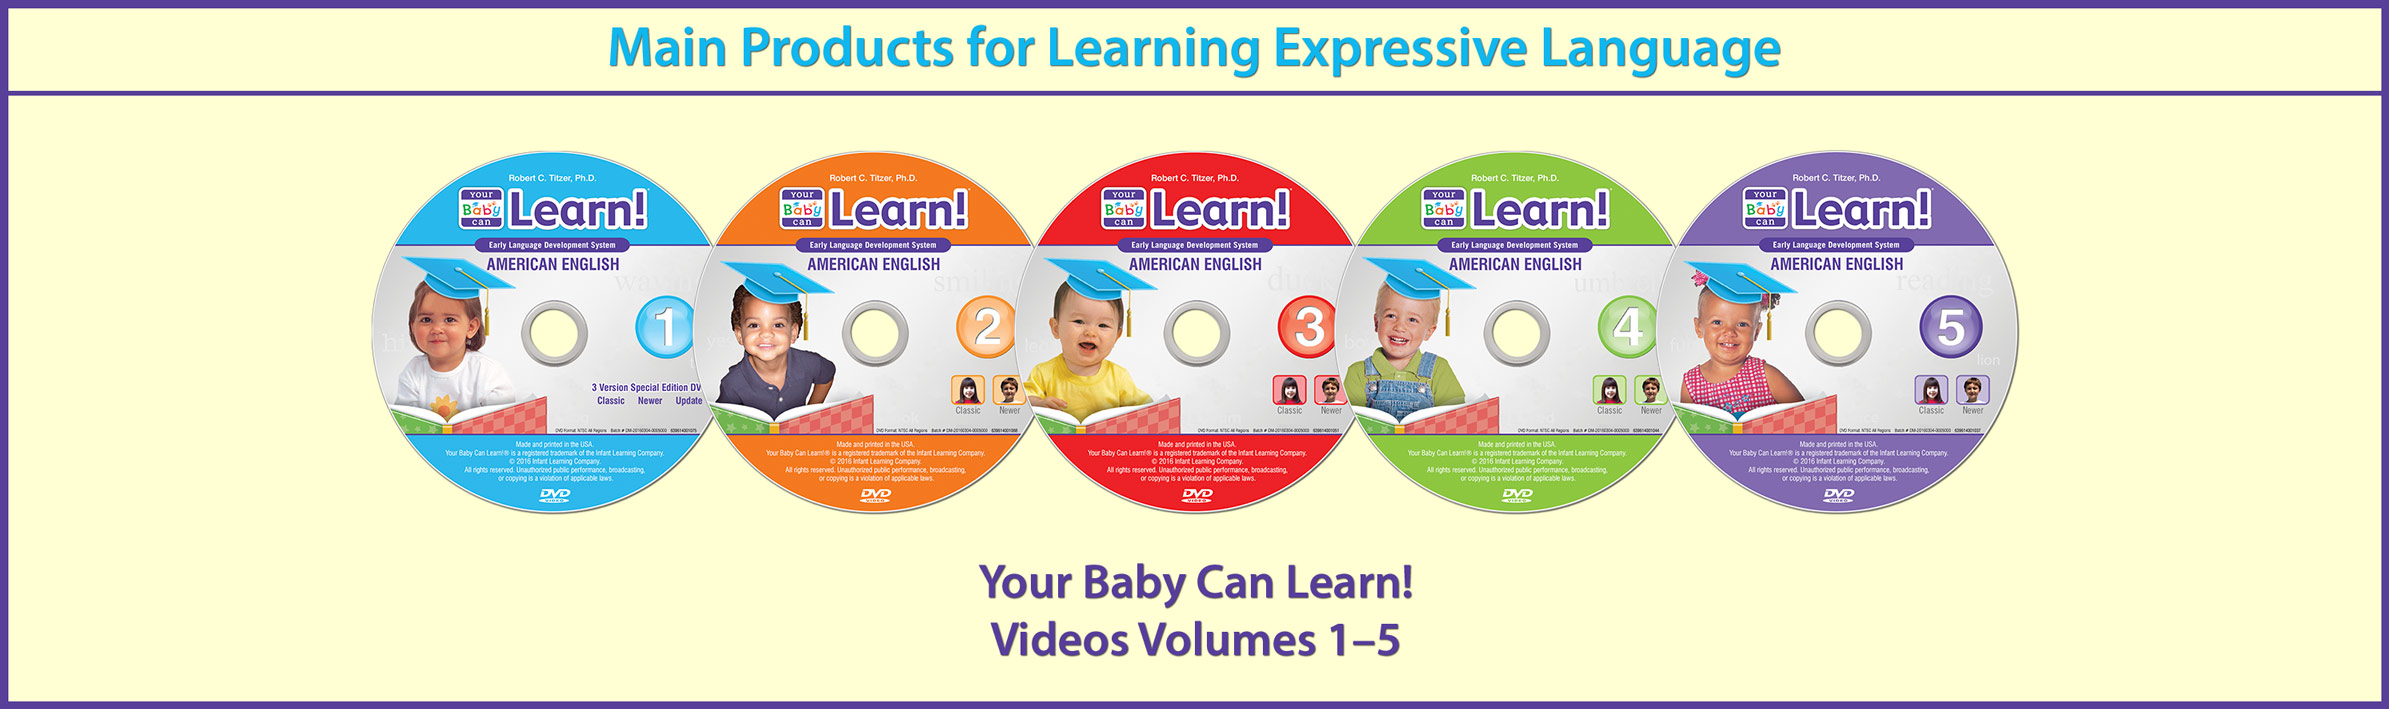 Main Products for Expressive Language